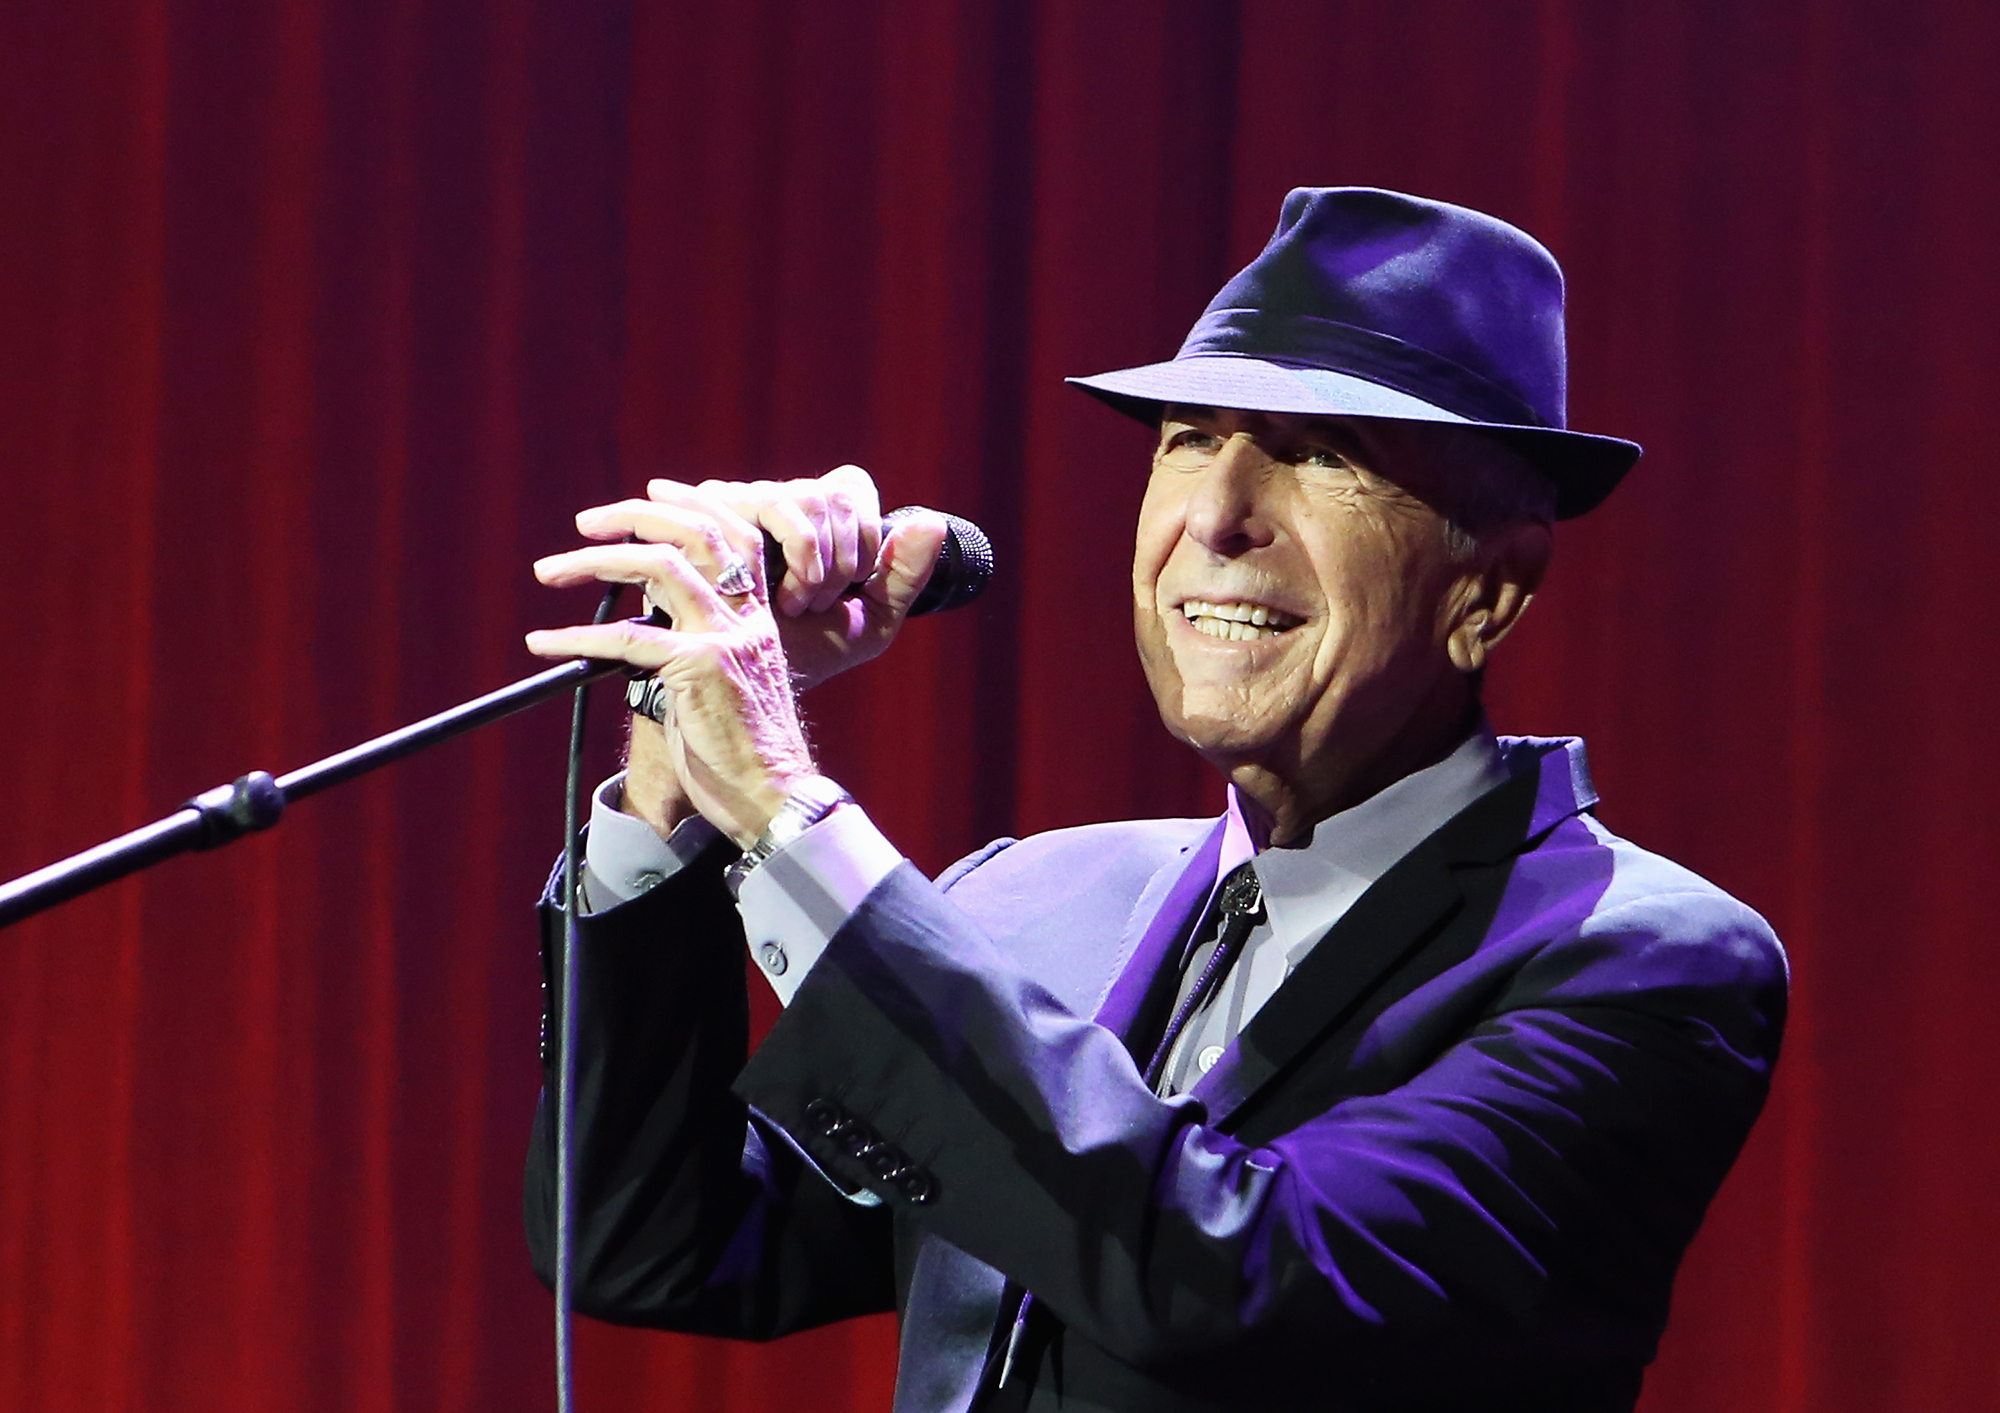 Leonard Cohen at the O2 Arena on Sept. 15, 2013 in London.